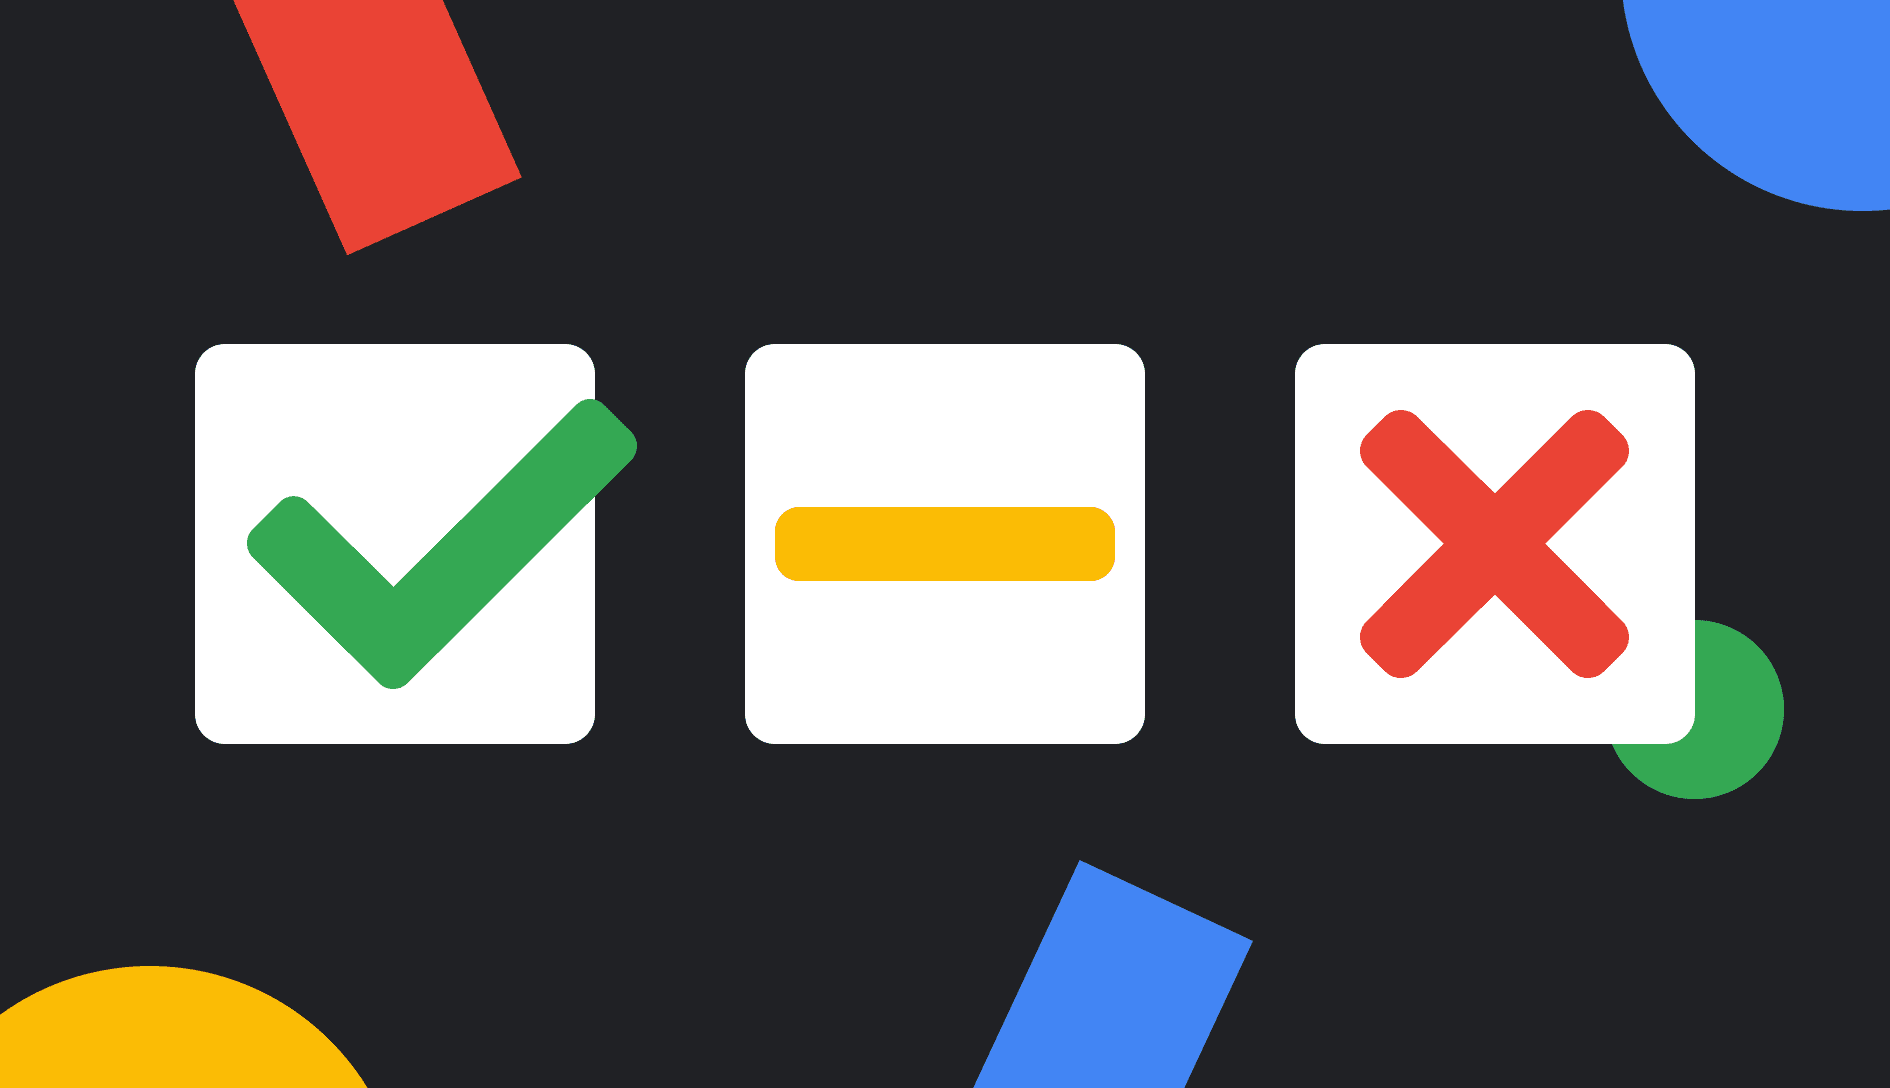 an image of a checkmark and an x